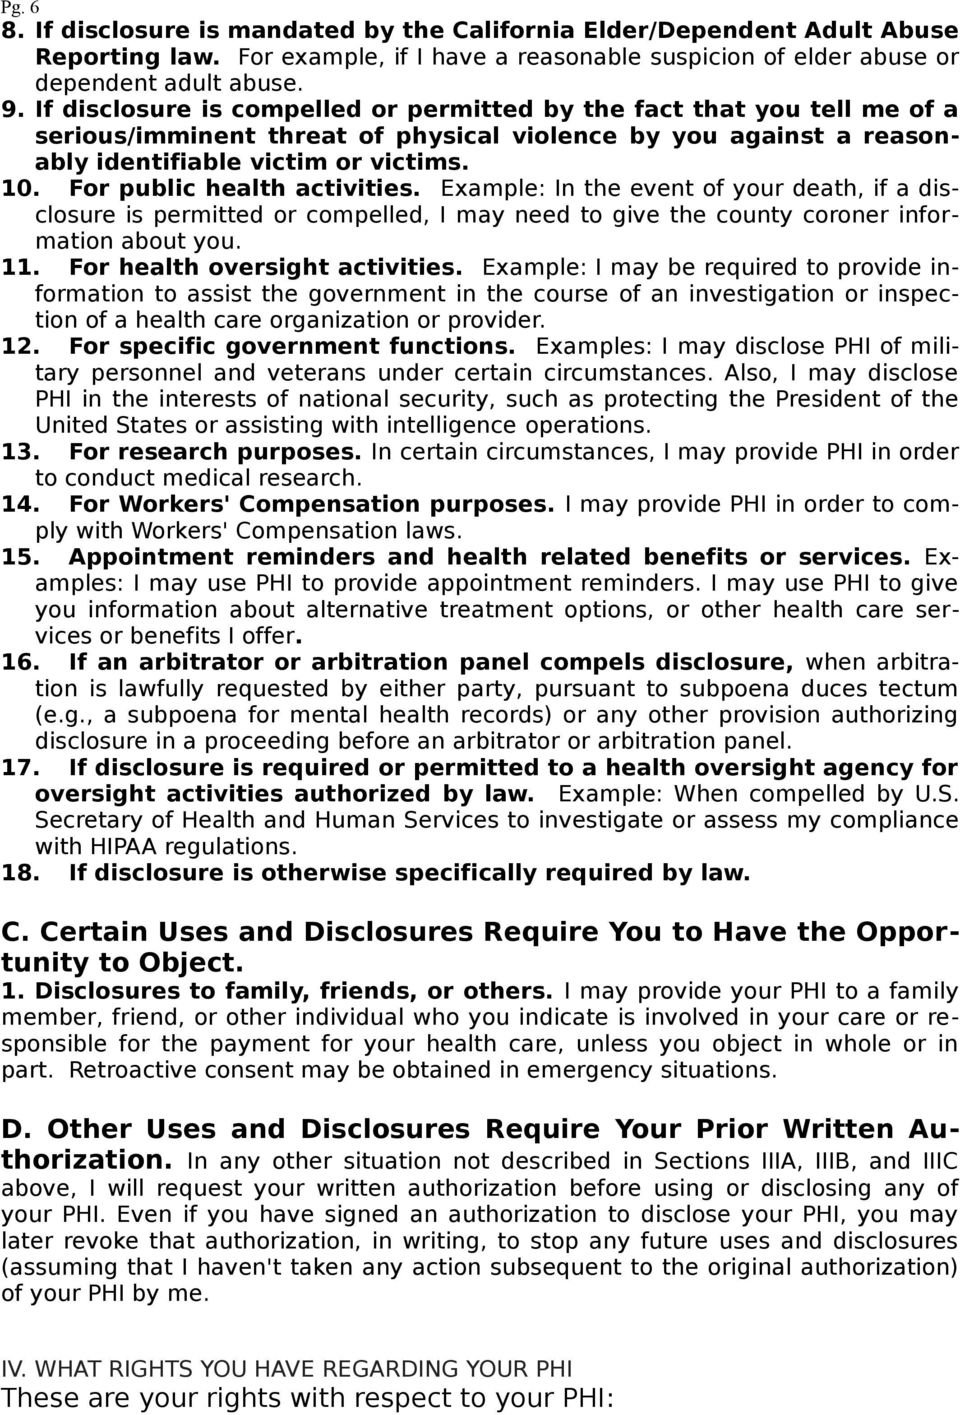 For public health activities. Example: In the event of your death, if a disclosure is permitted or compelled, I may need to give the county coroner information about you. 11.